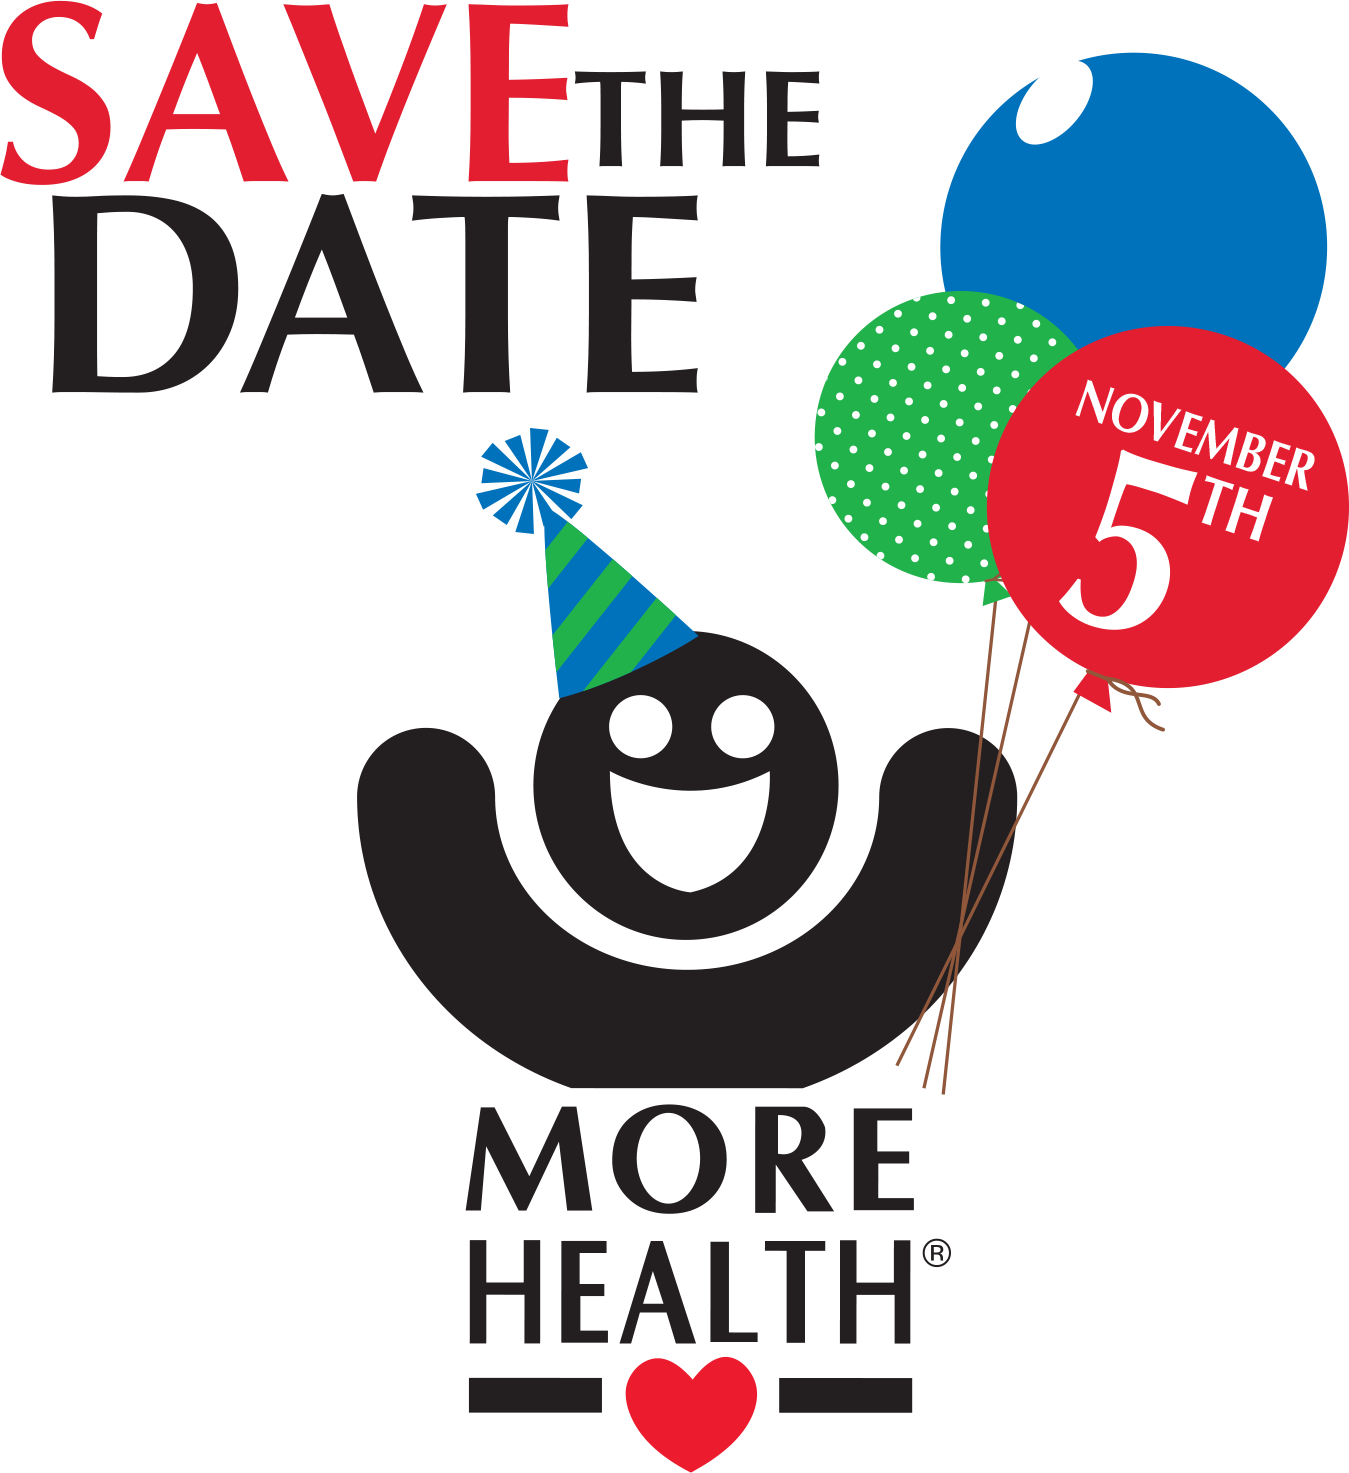 More Health 30th Anniversay Save The Date